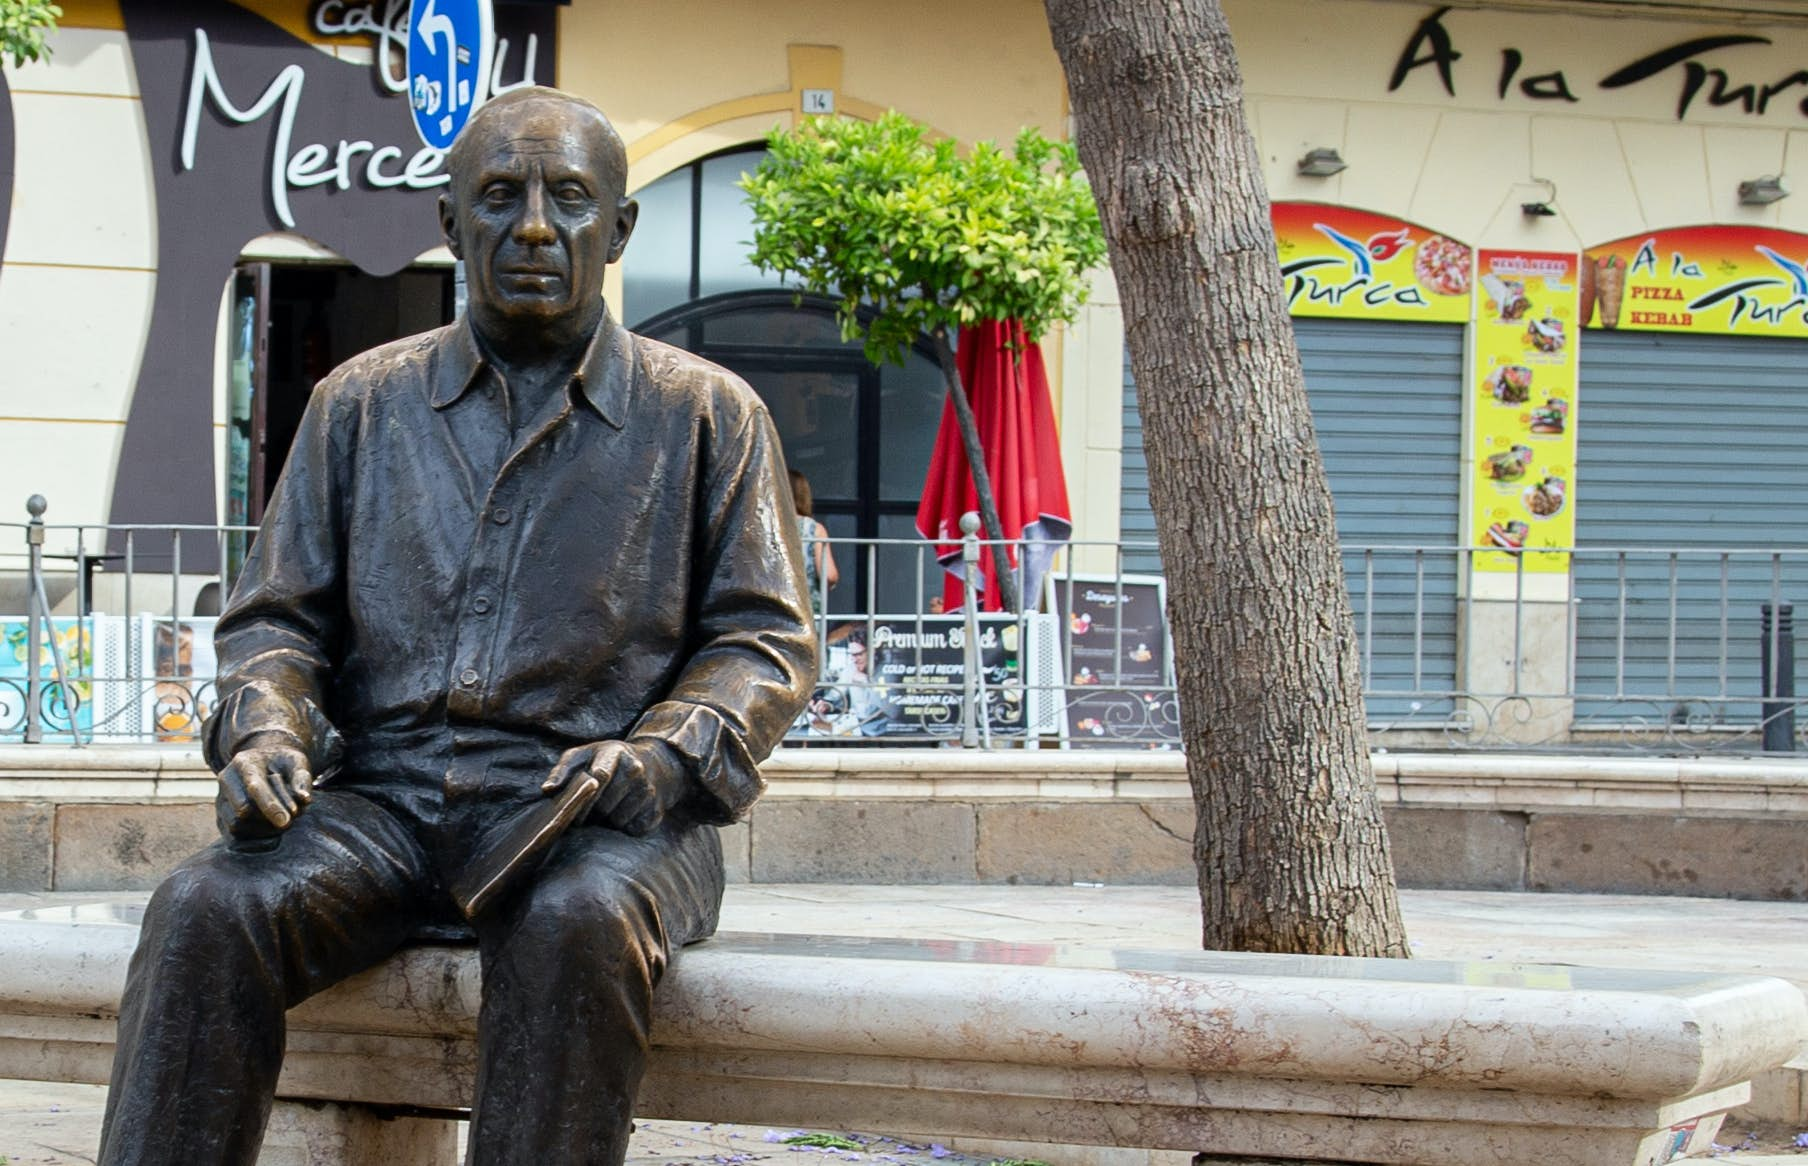 Picasso's Malaga (QUEST IN TEST MODE) image